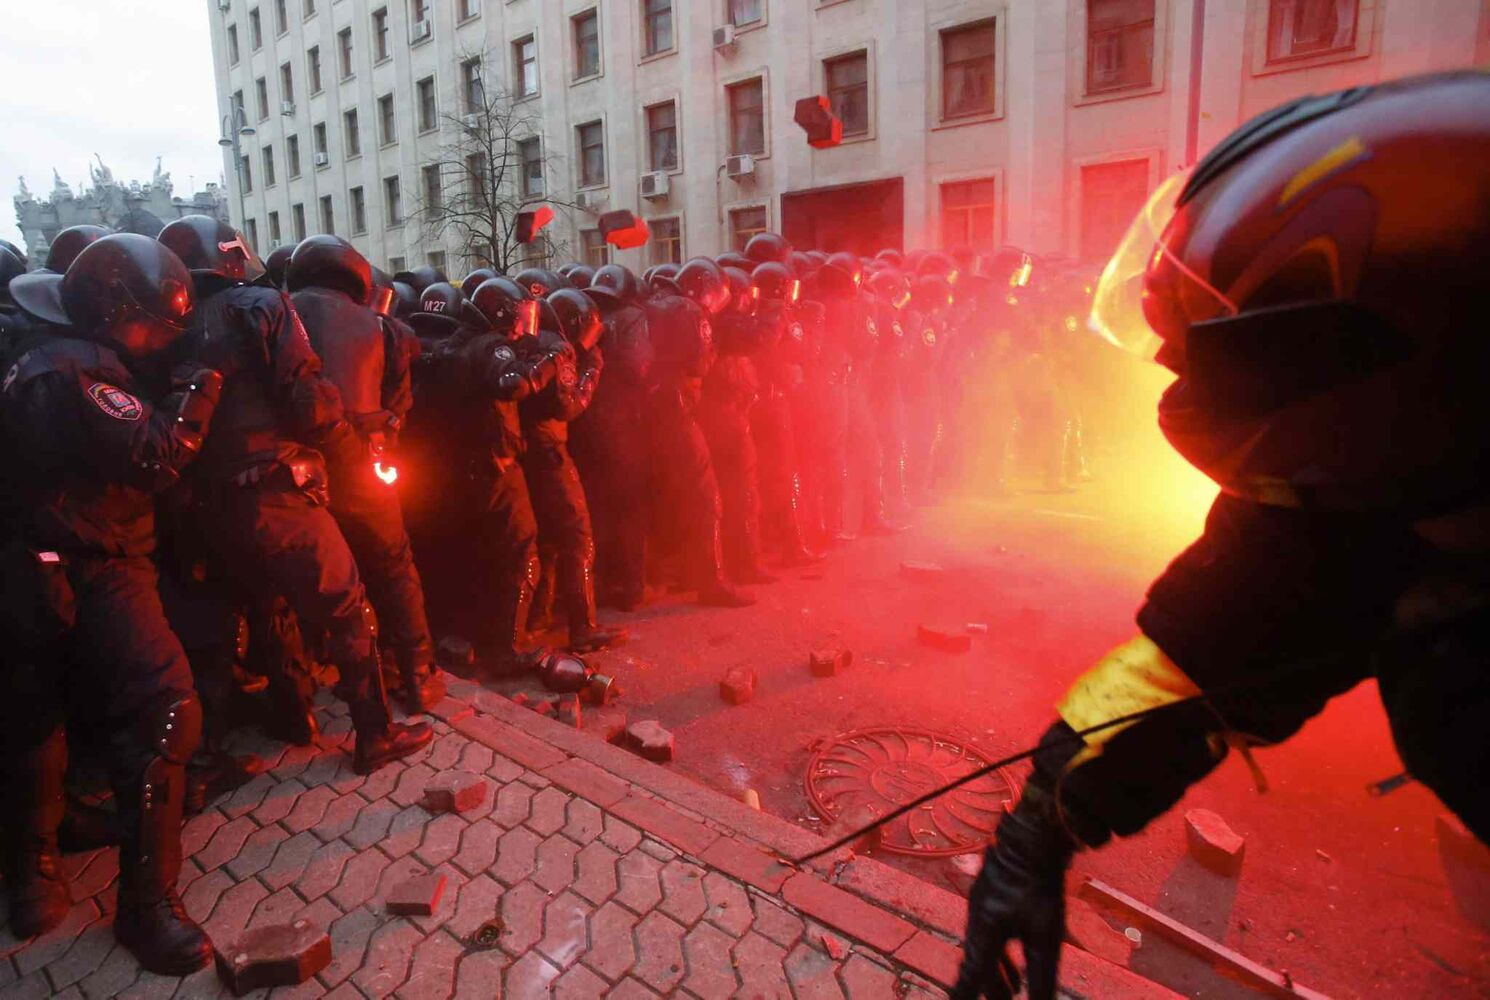 Protesters throw stones as they clash with police outside the presidential administration building in downtown Kiev, Ukraine. More than 100,000 demonstrators chased away police to rally in the center of Ukraine's capital on Sunday.  (Sergei Grits / The Associated Press)